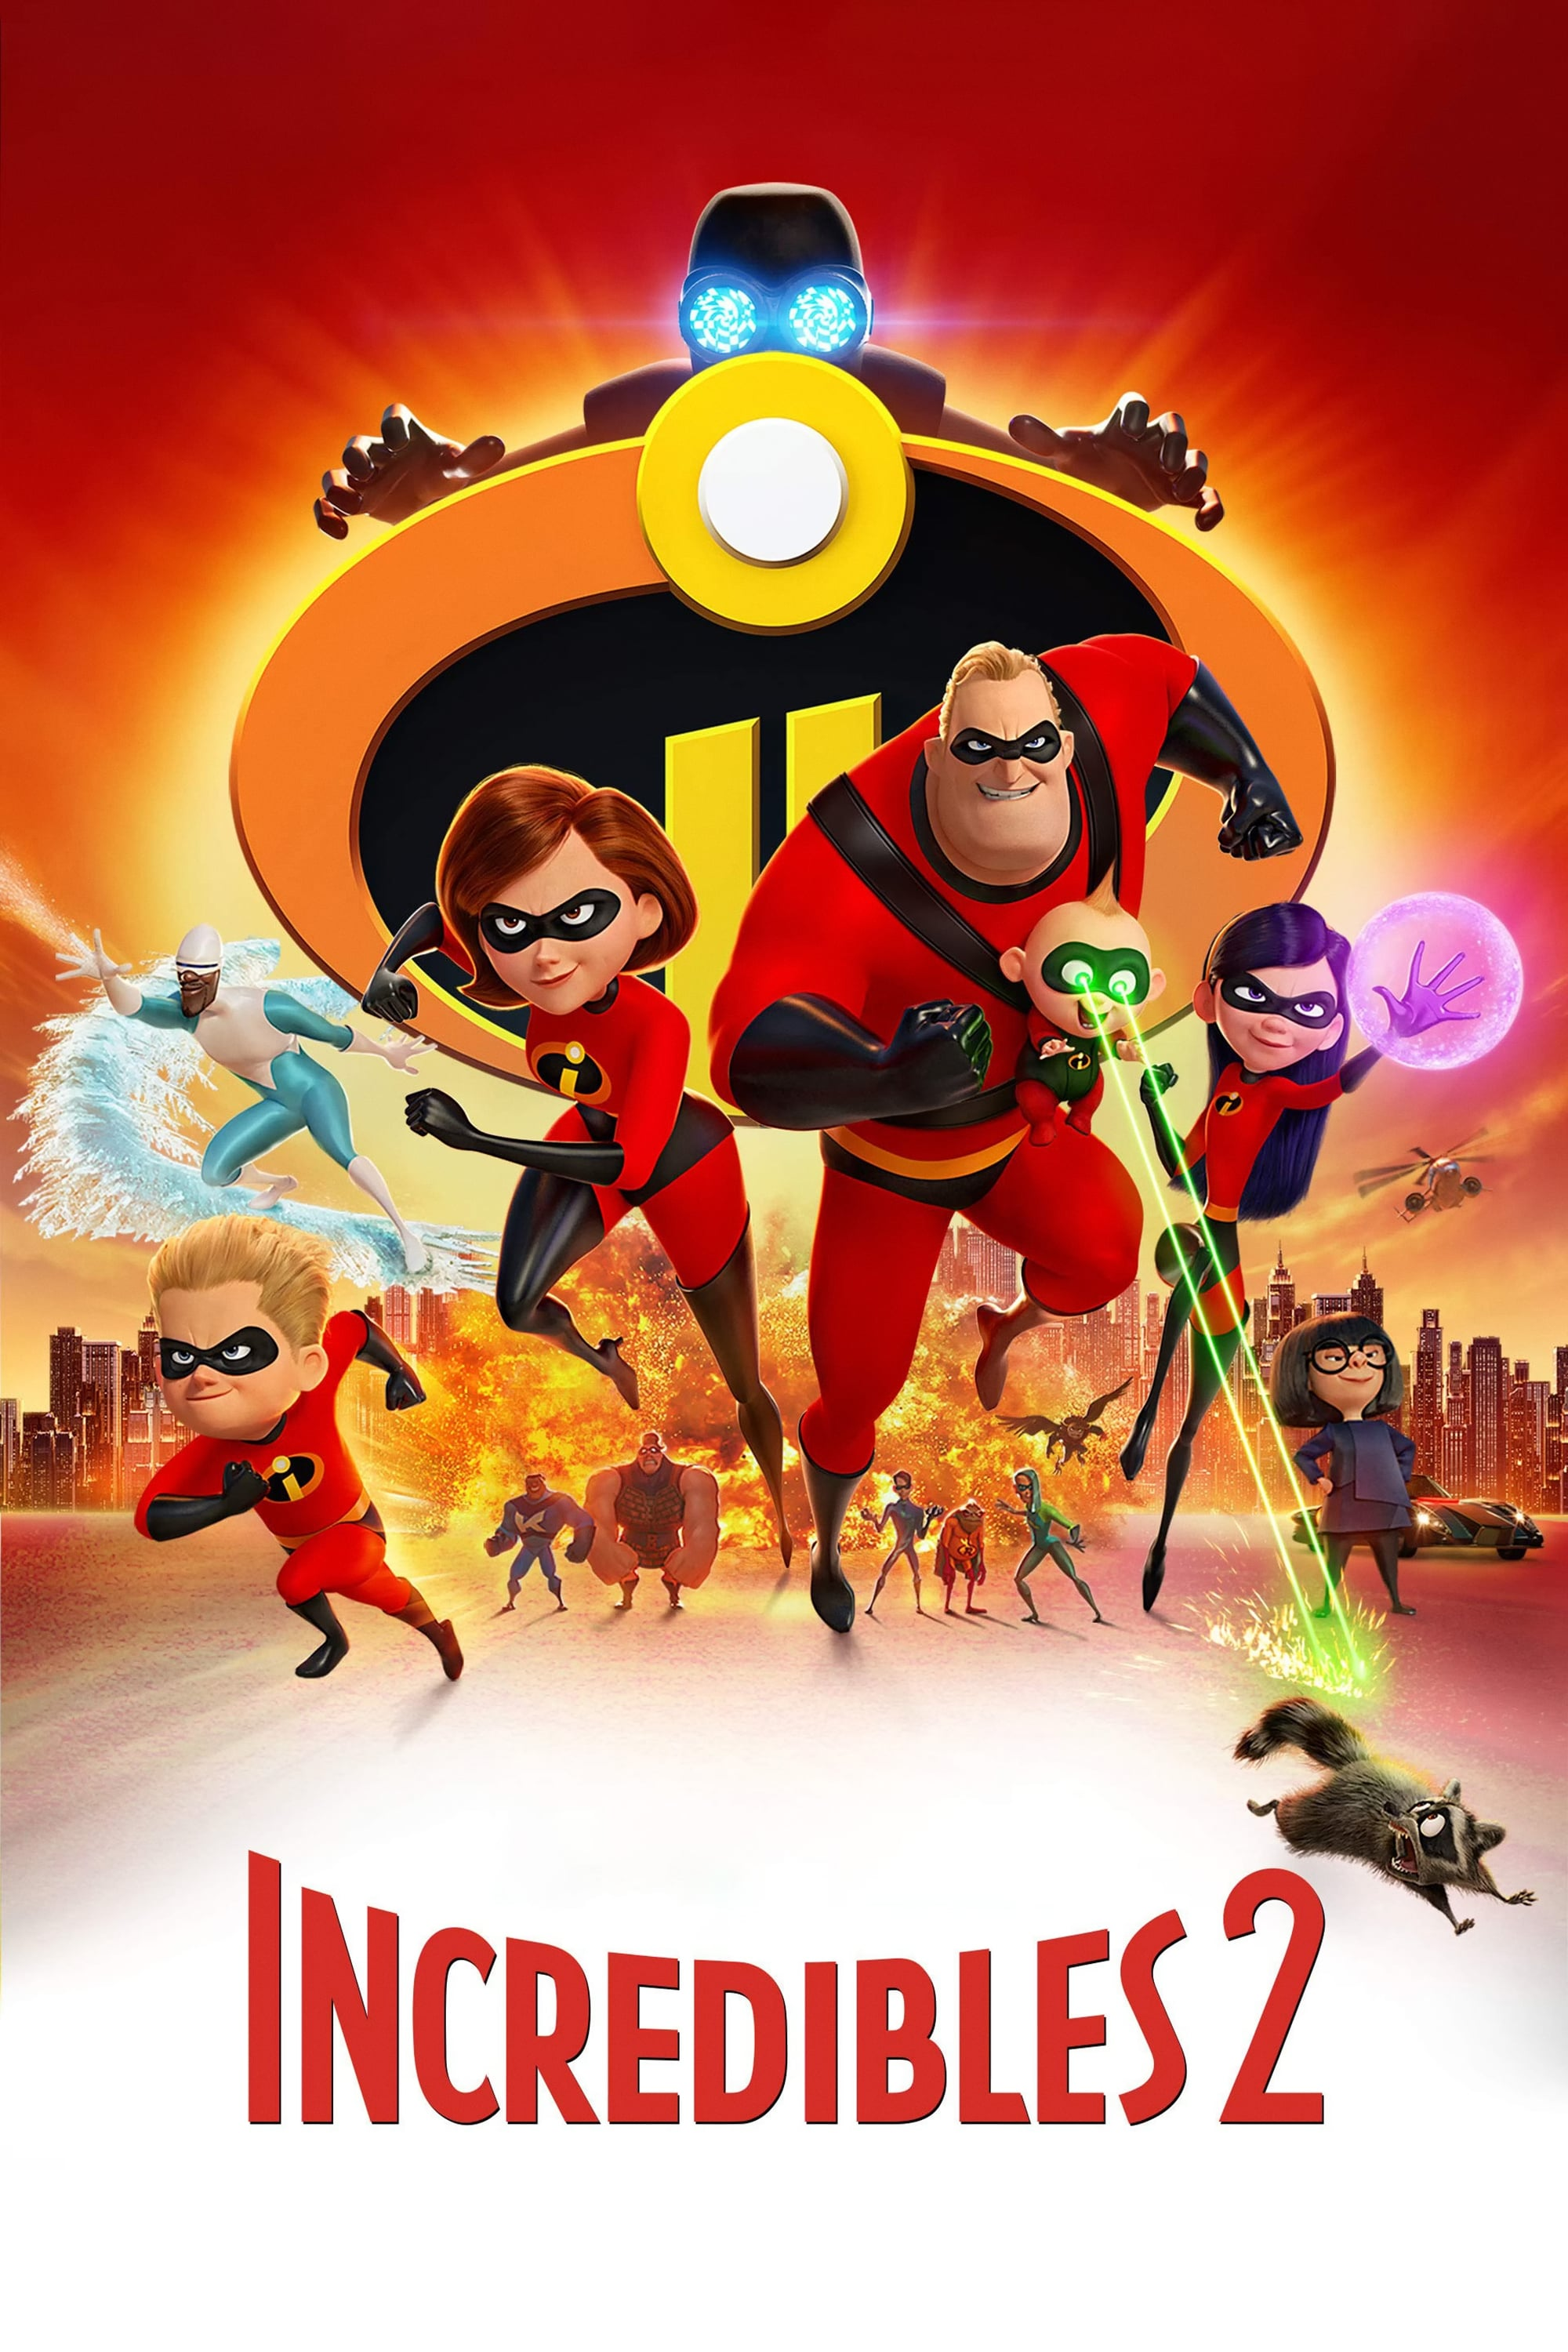 The Incredibles - Wikipedia